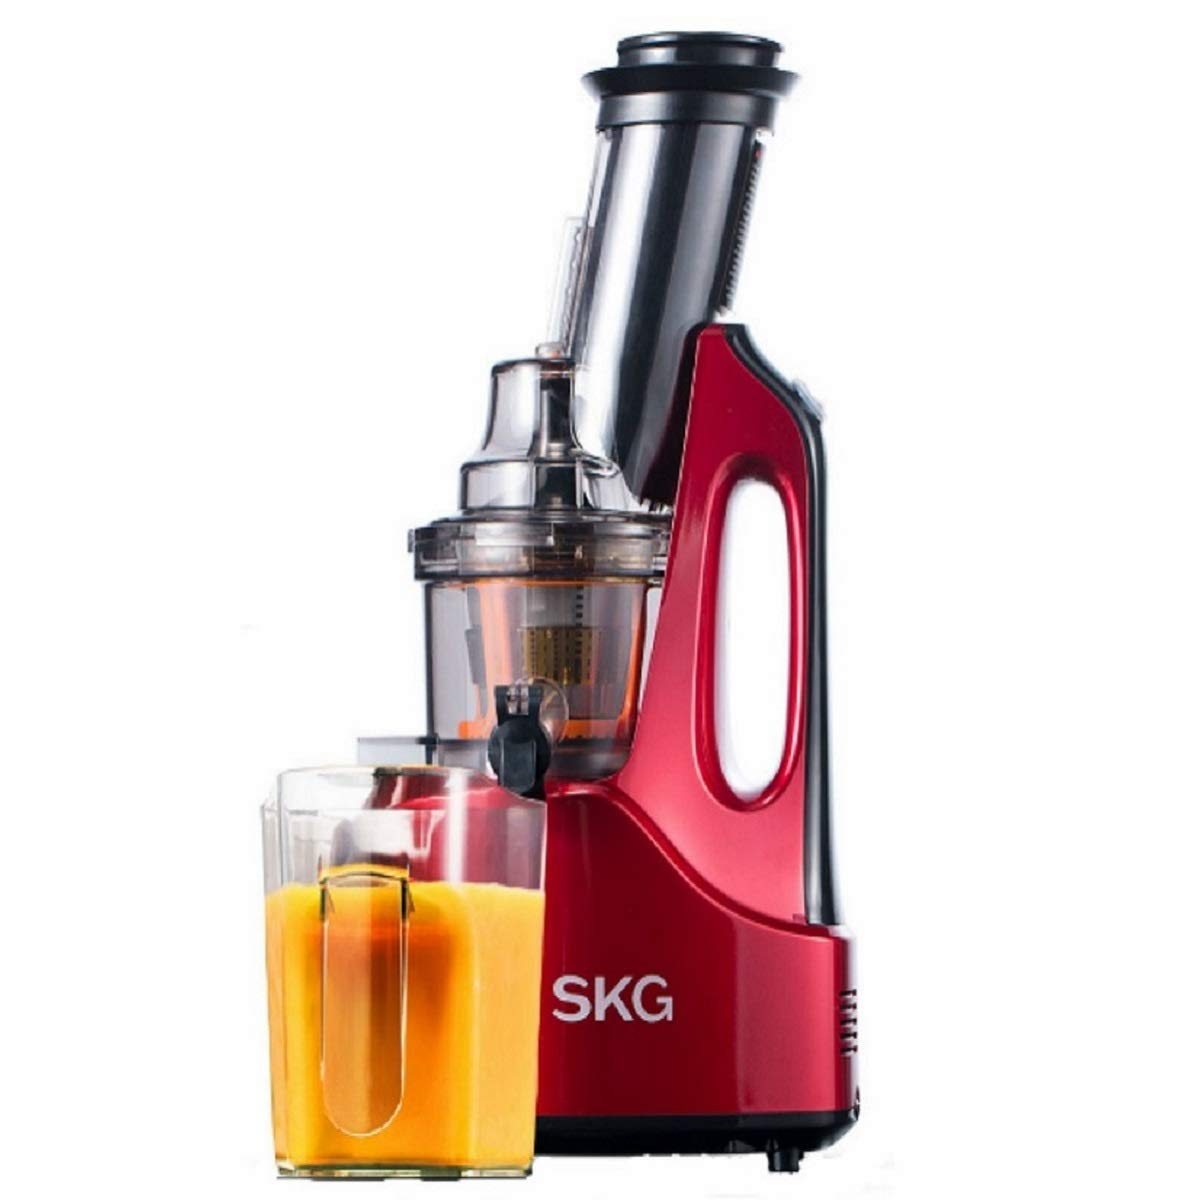 SKG Masticating Juicers